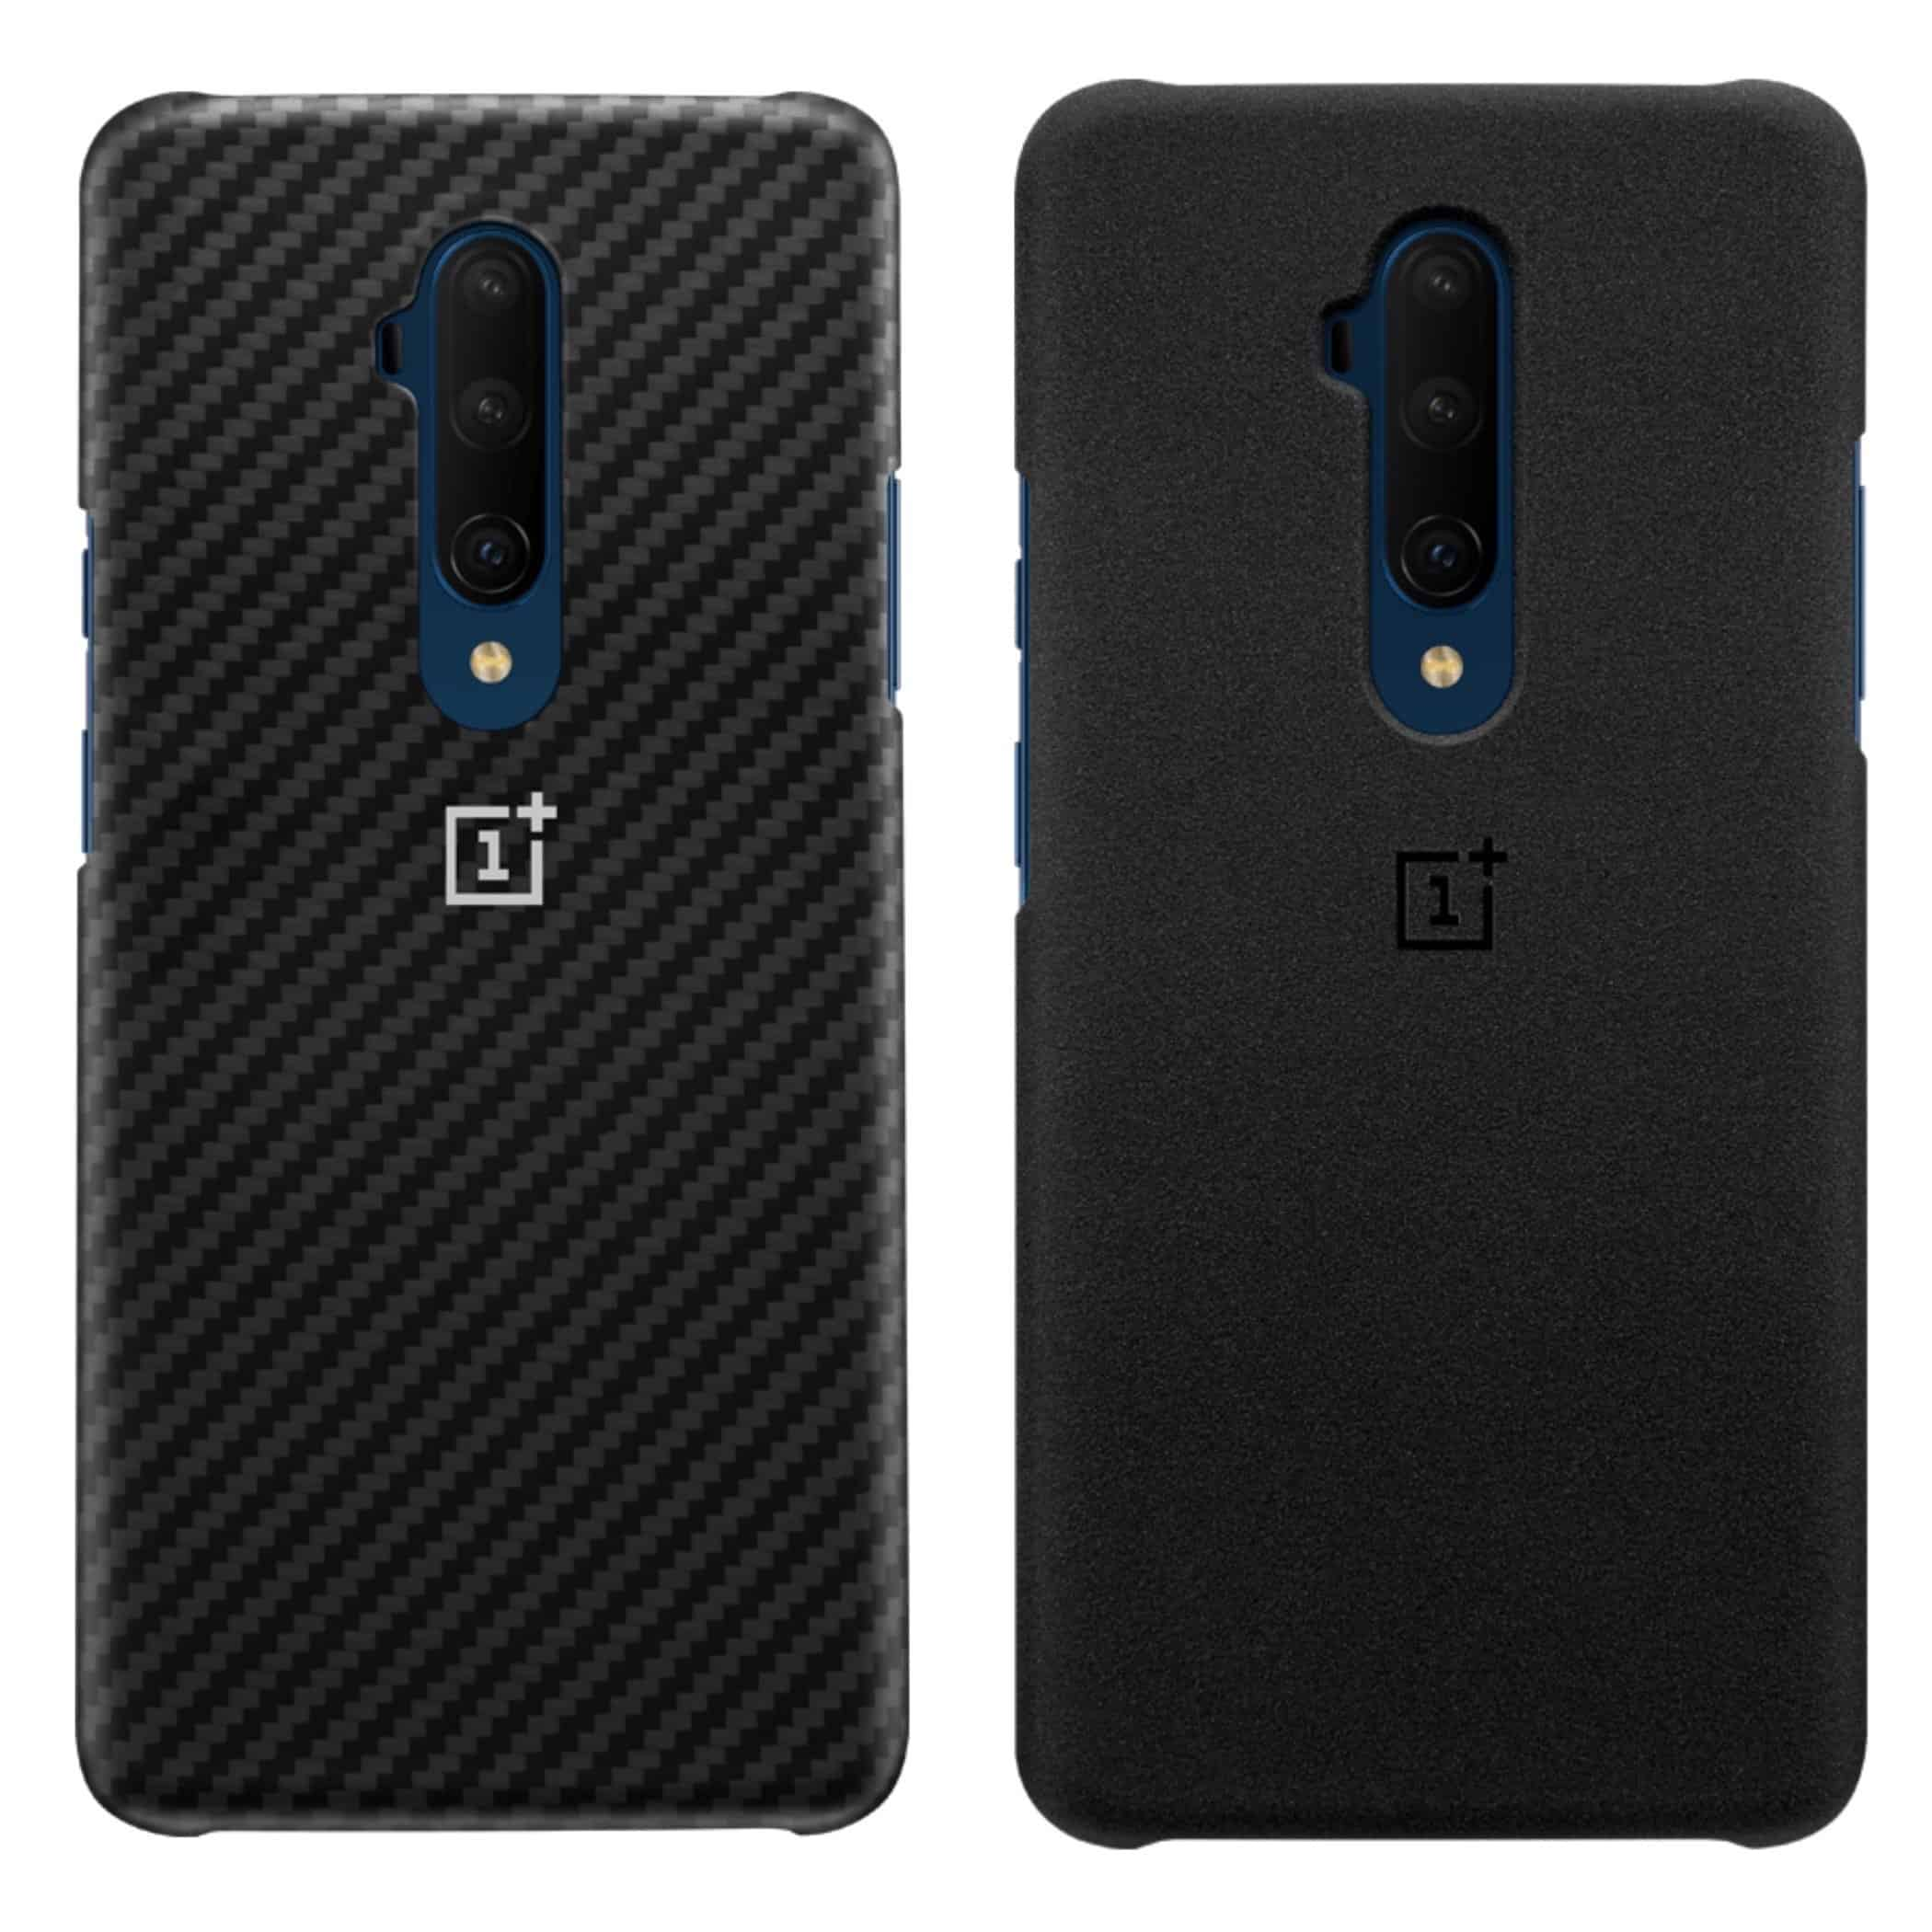 OnePlus 7T Pro official cases leak 2